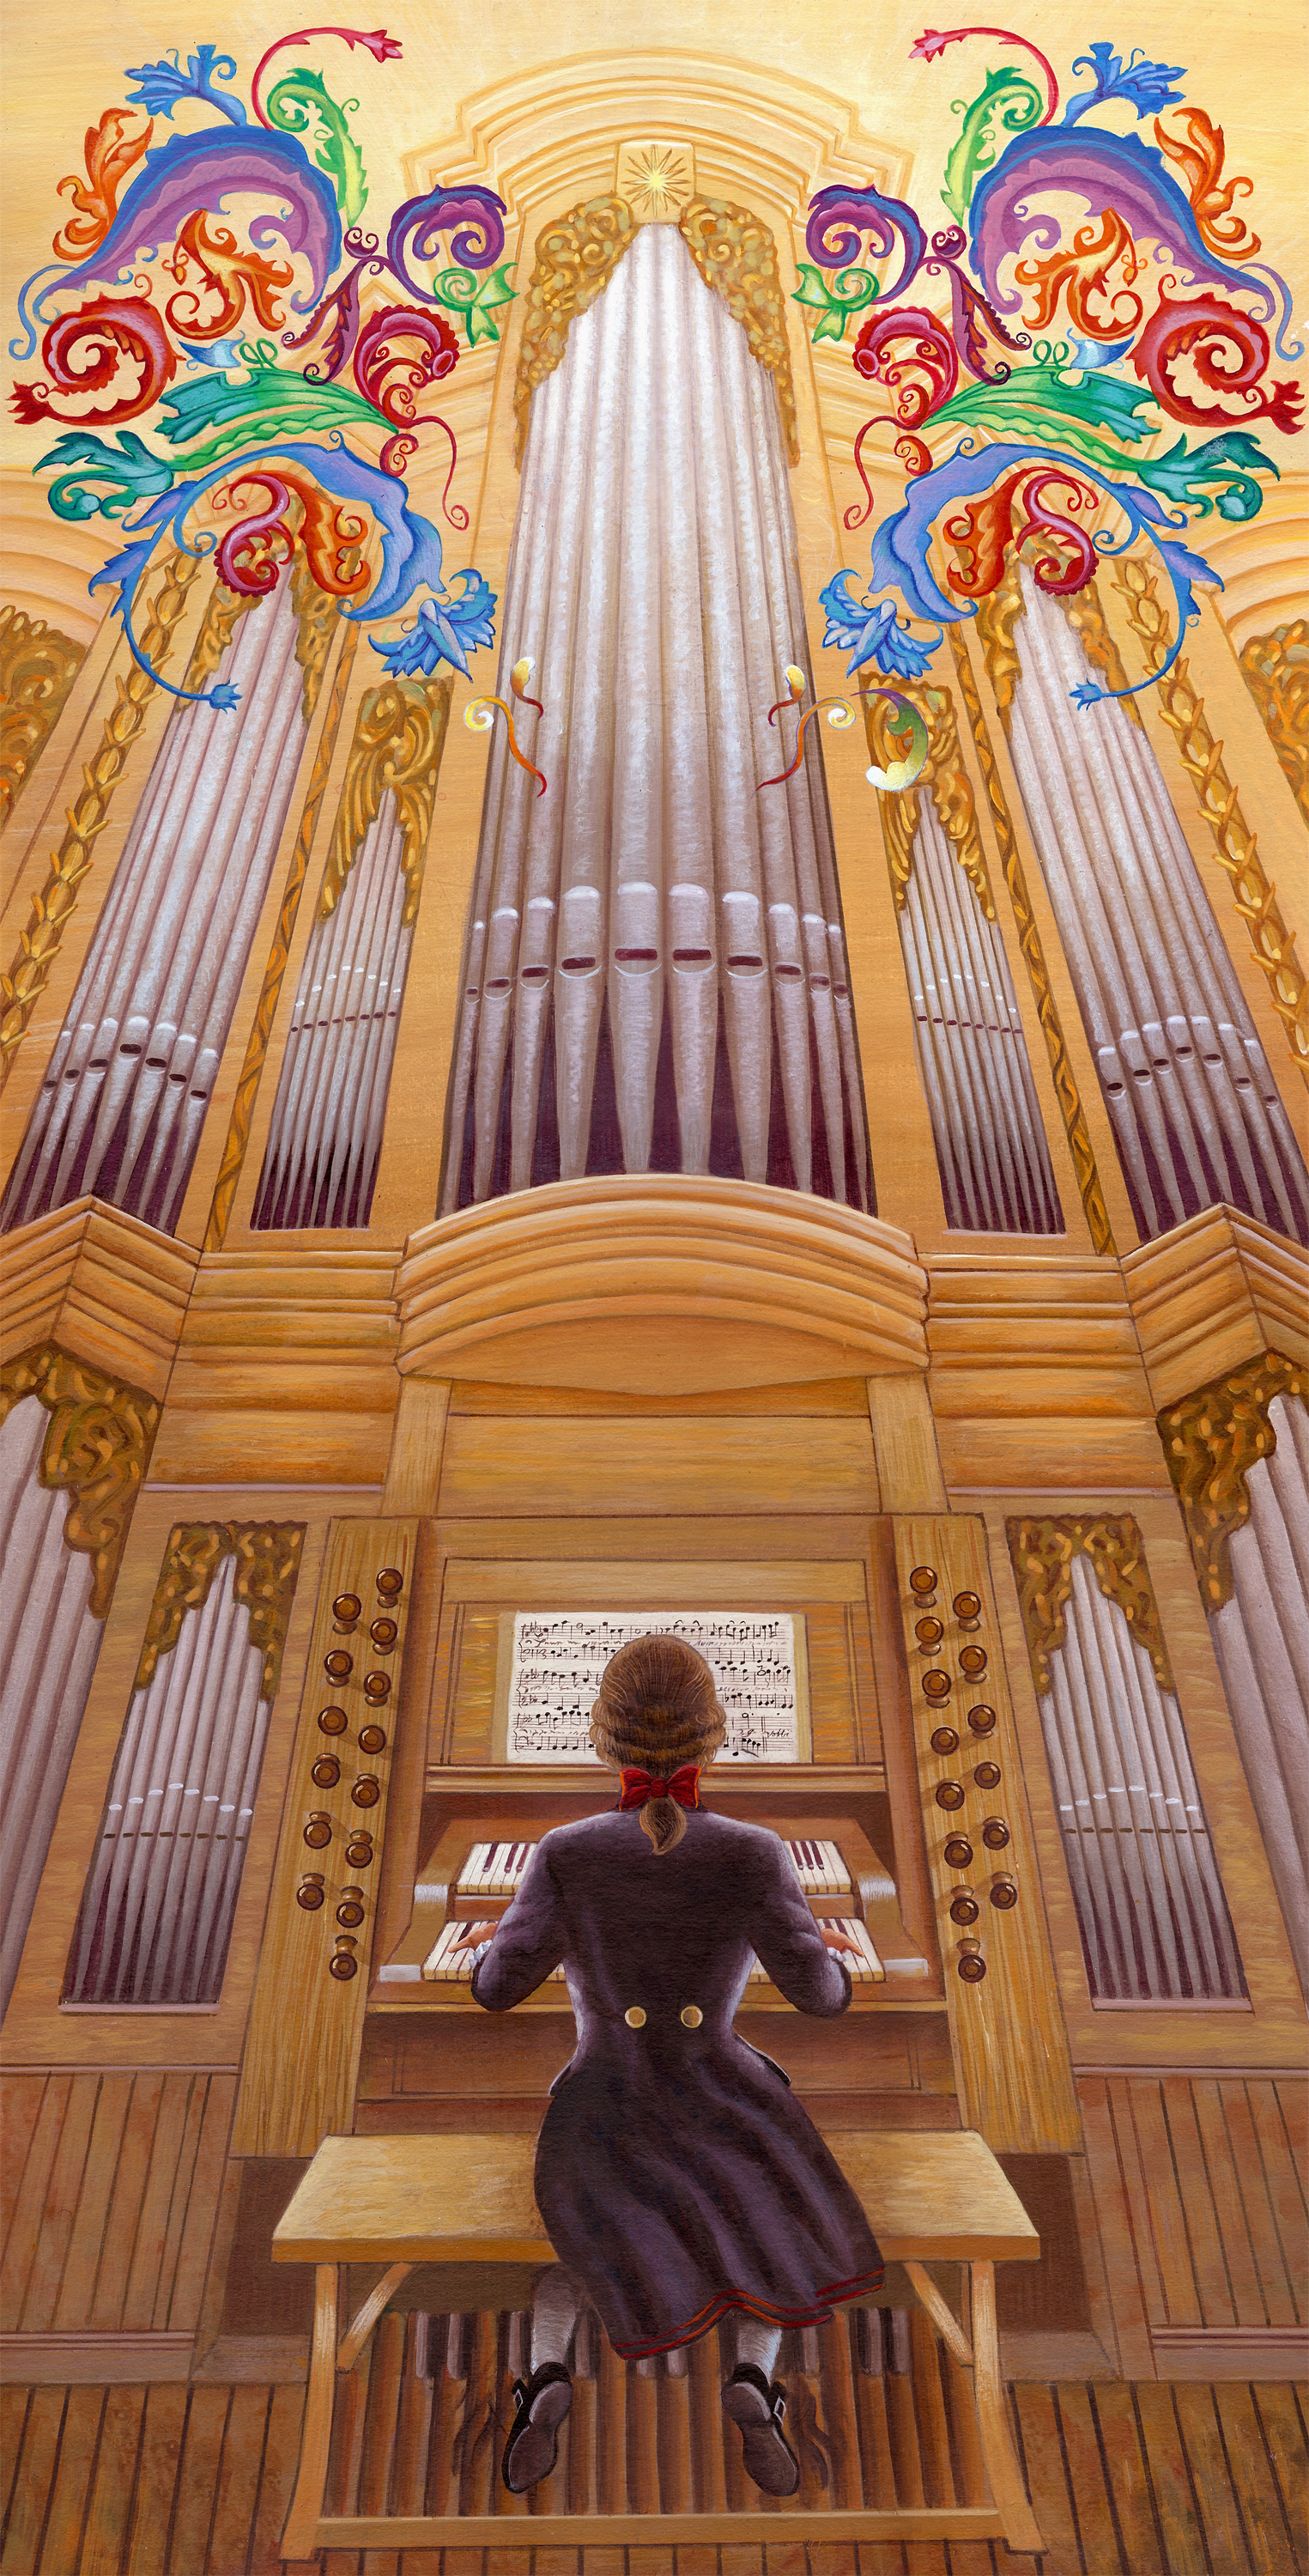 Bach at organ